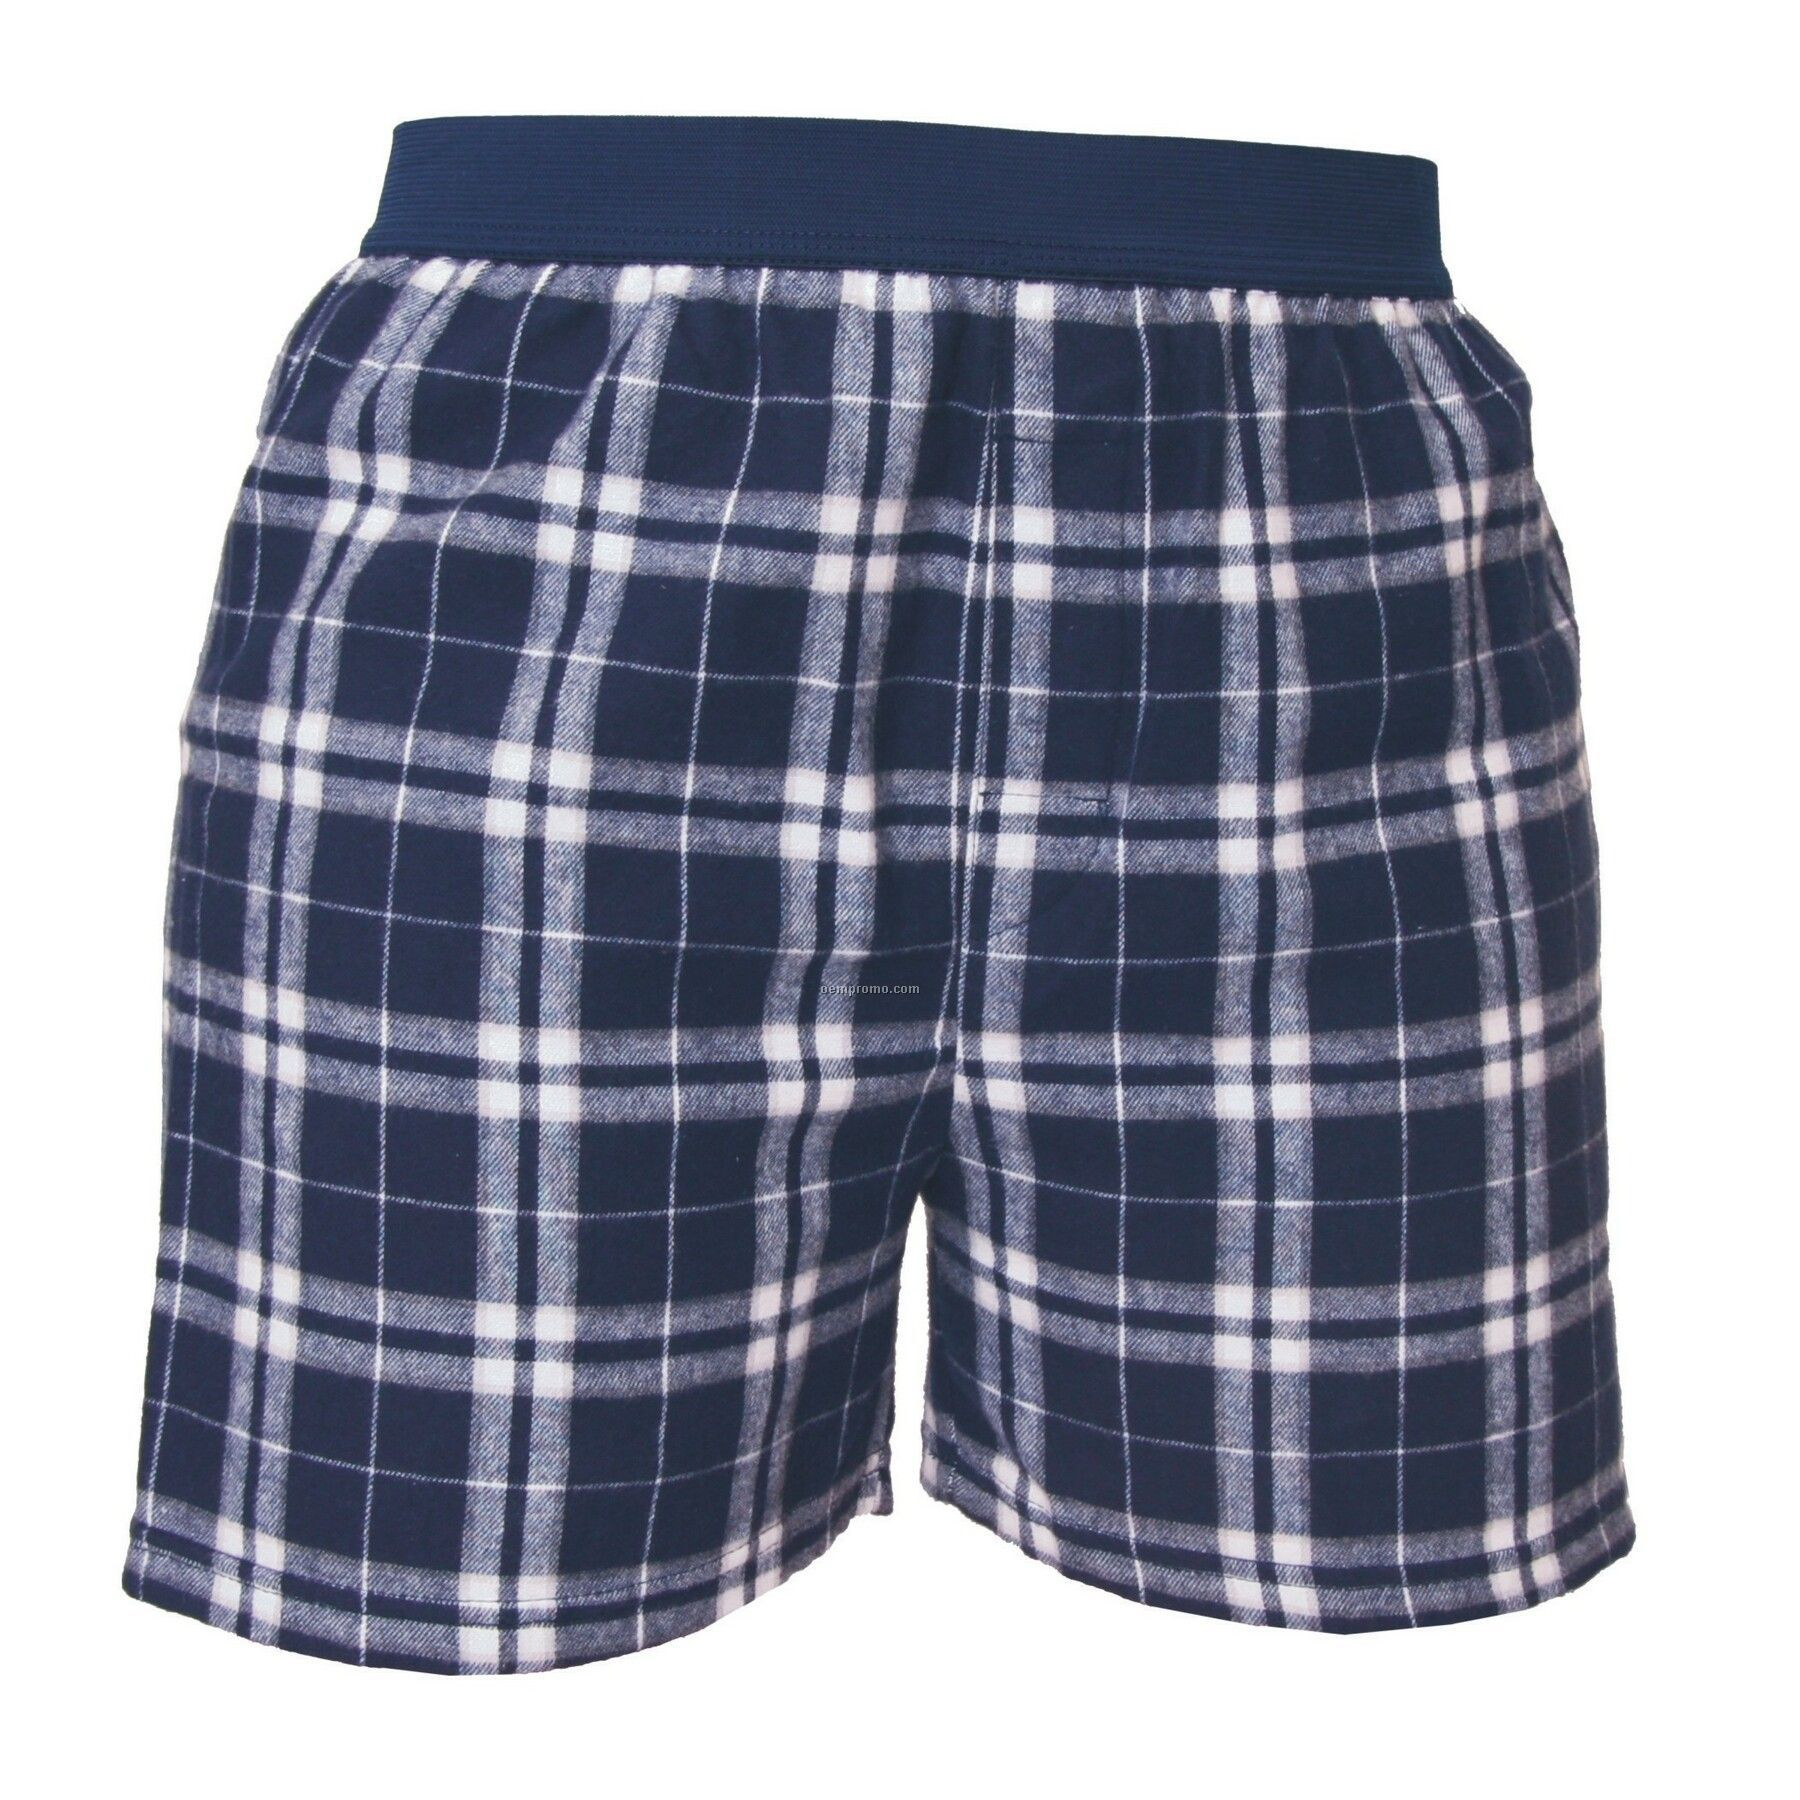 Adult Navy Blue/Silver Plaid Classic Boxer Short